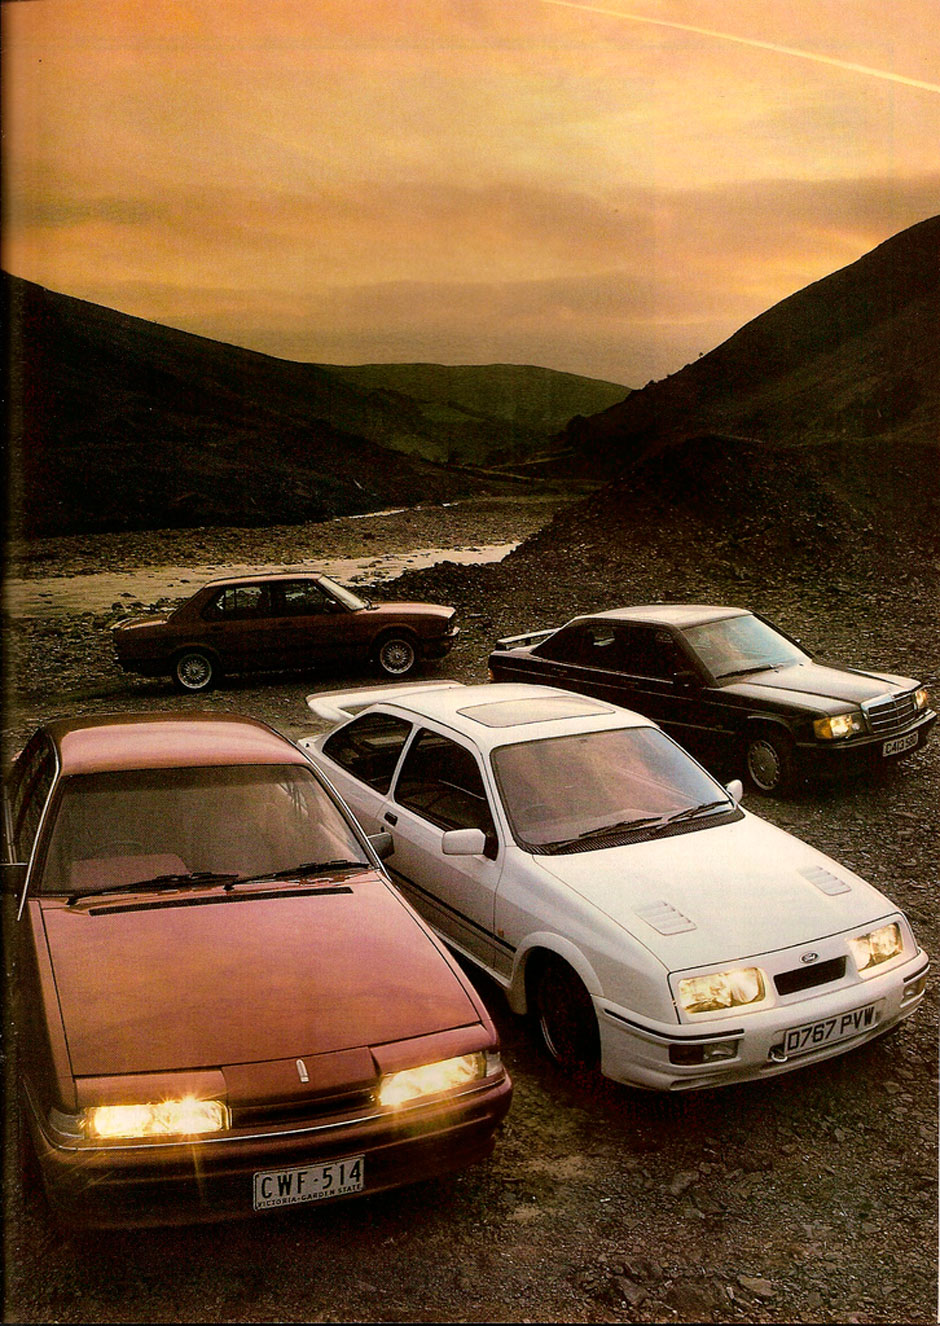 BMW M5 E28, Ford Sierra RS, Holden Commodore HDT, Mercedes 190E 2.3-16